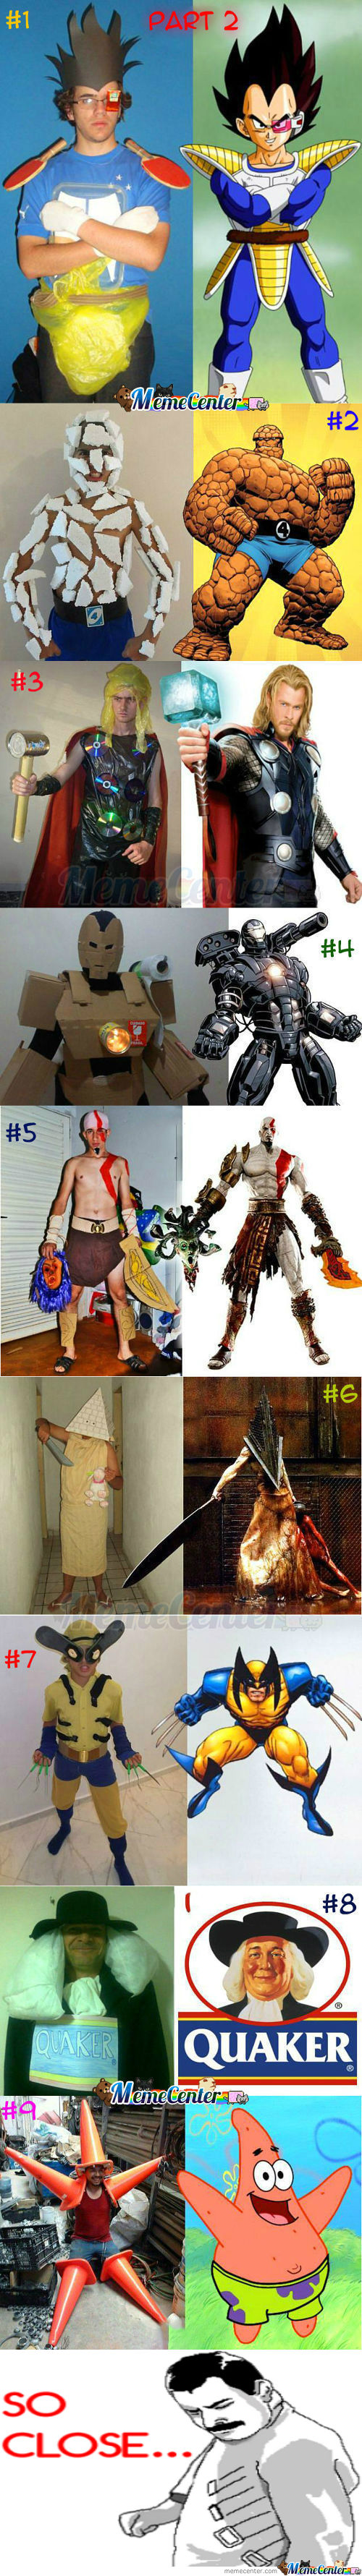 [RMX] Low Budget Creative Cosplay : Part 2